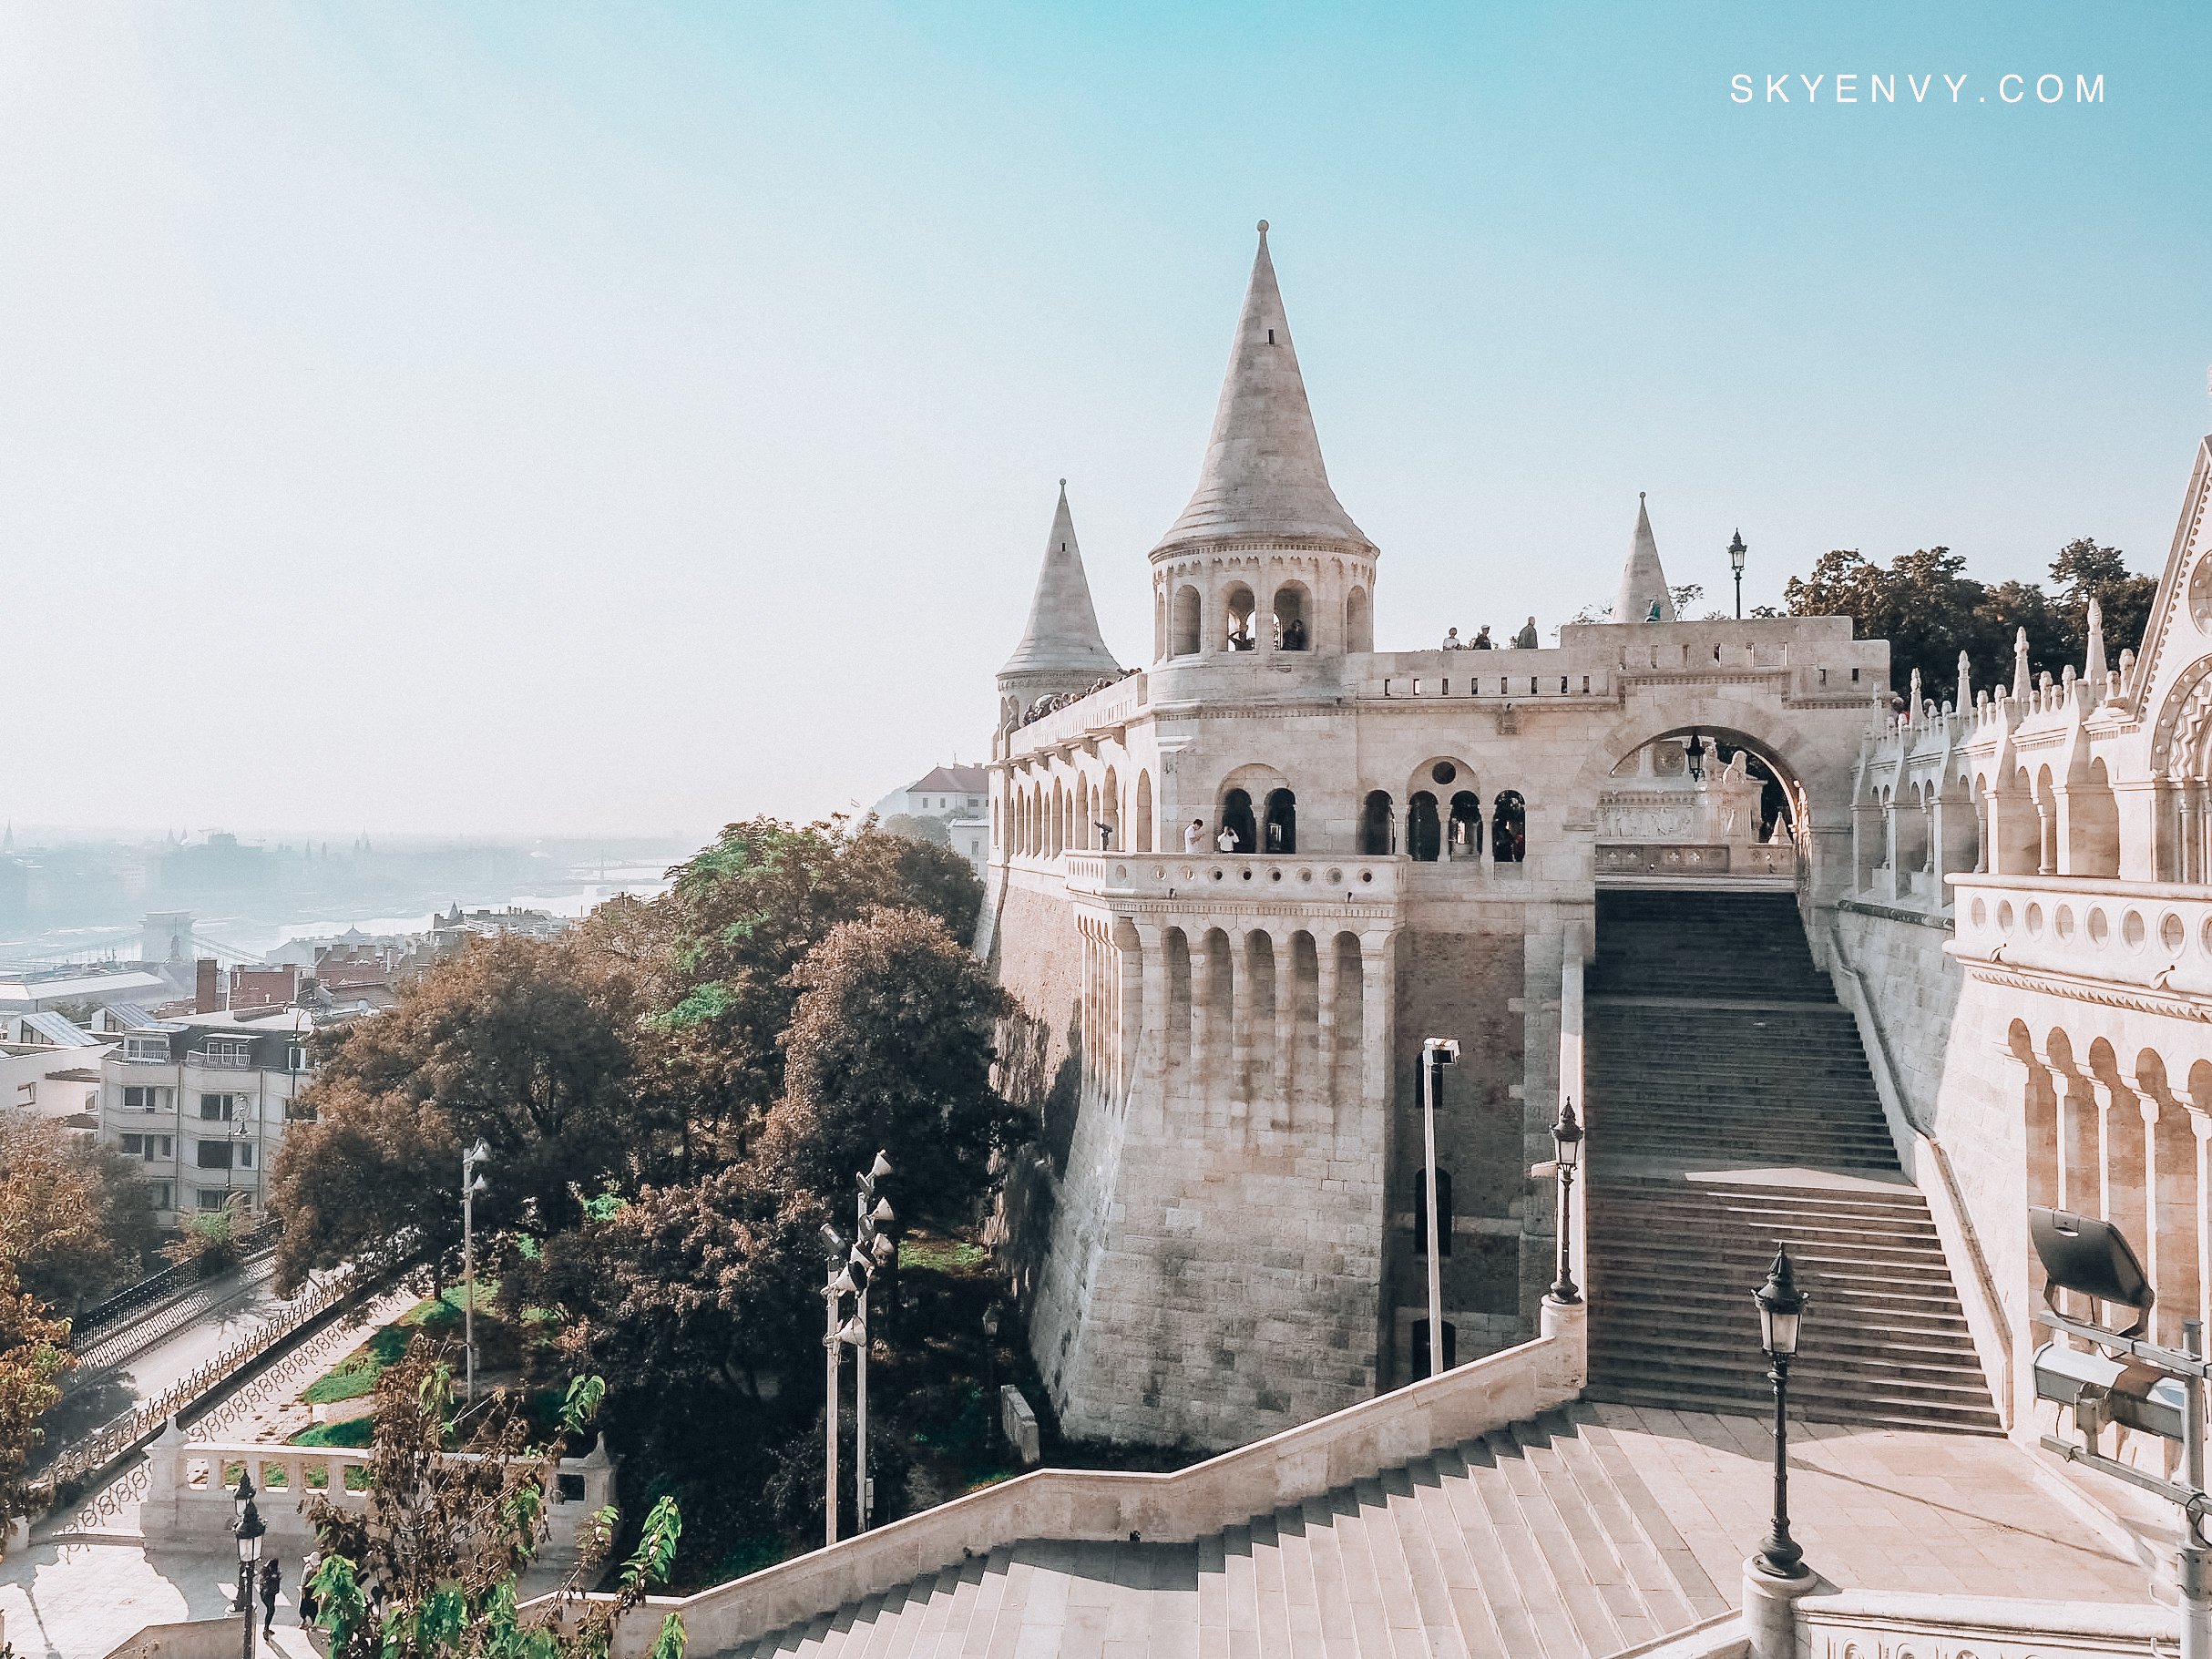 Fisherman's Bastion; Budapest; Hungary; Central Europe; Fairytale; Castle; Sky Envy; Blue Sky; Early Morning